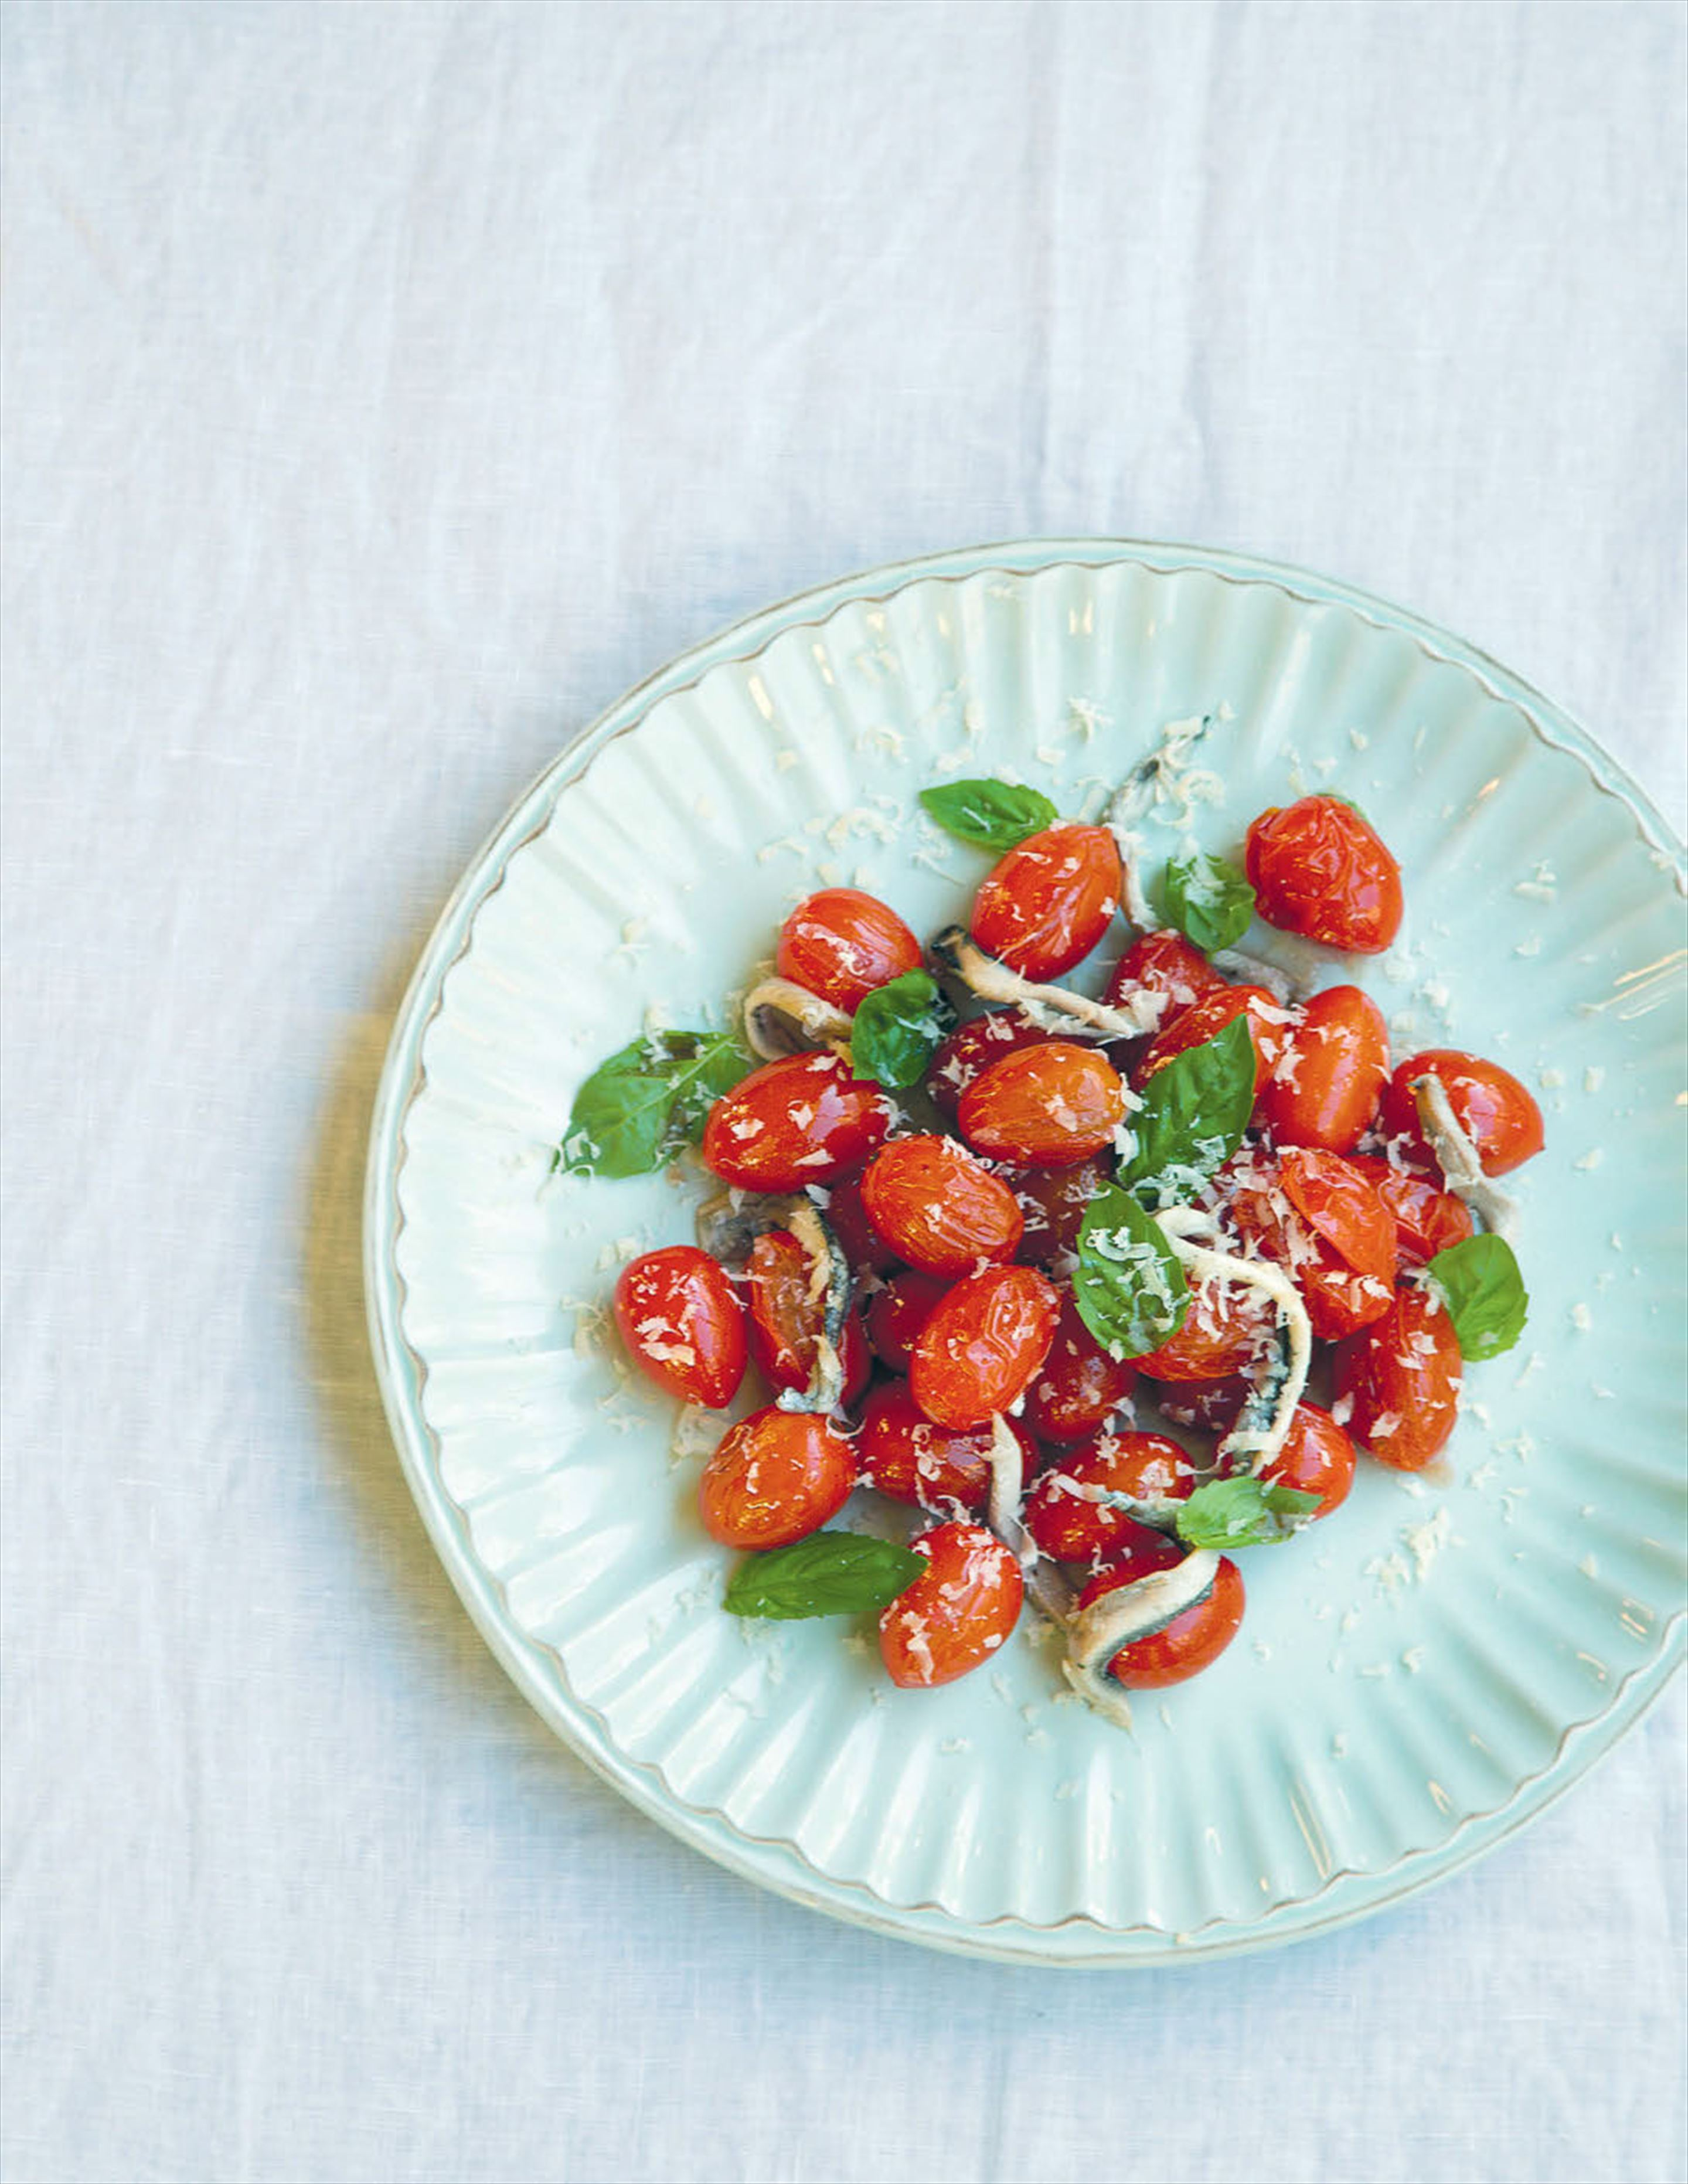 Scorched tomatoes with white anchovies and salted ricotta